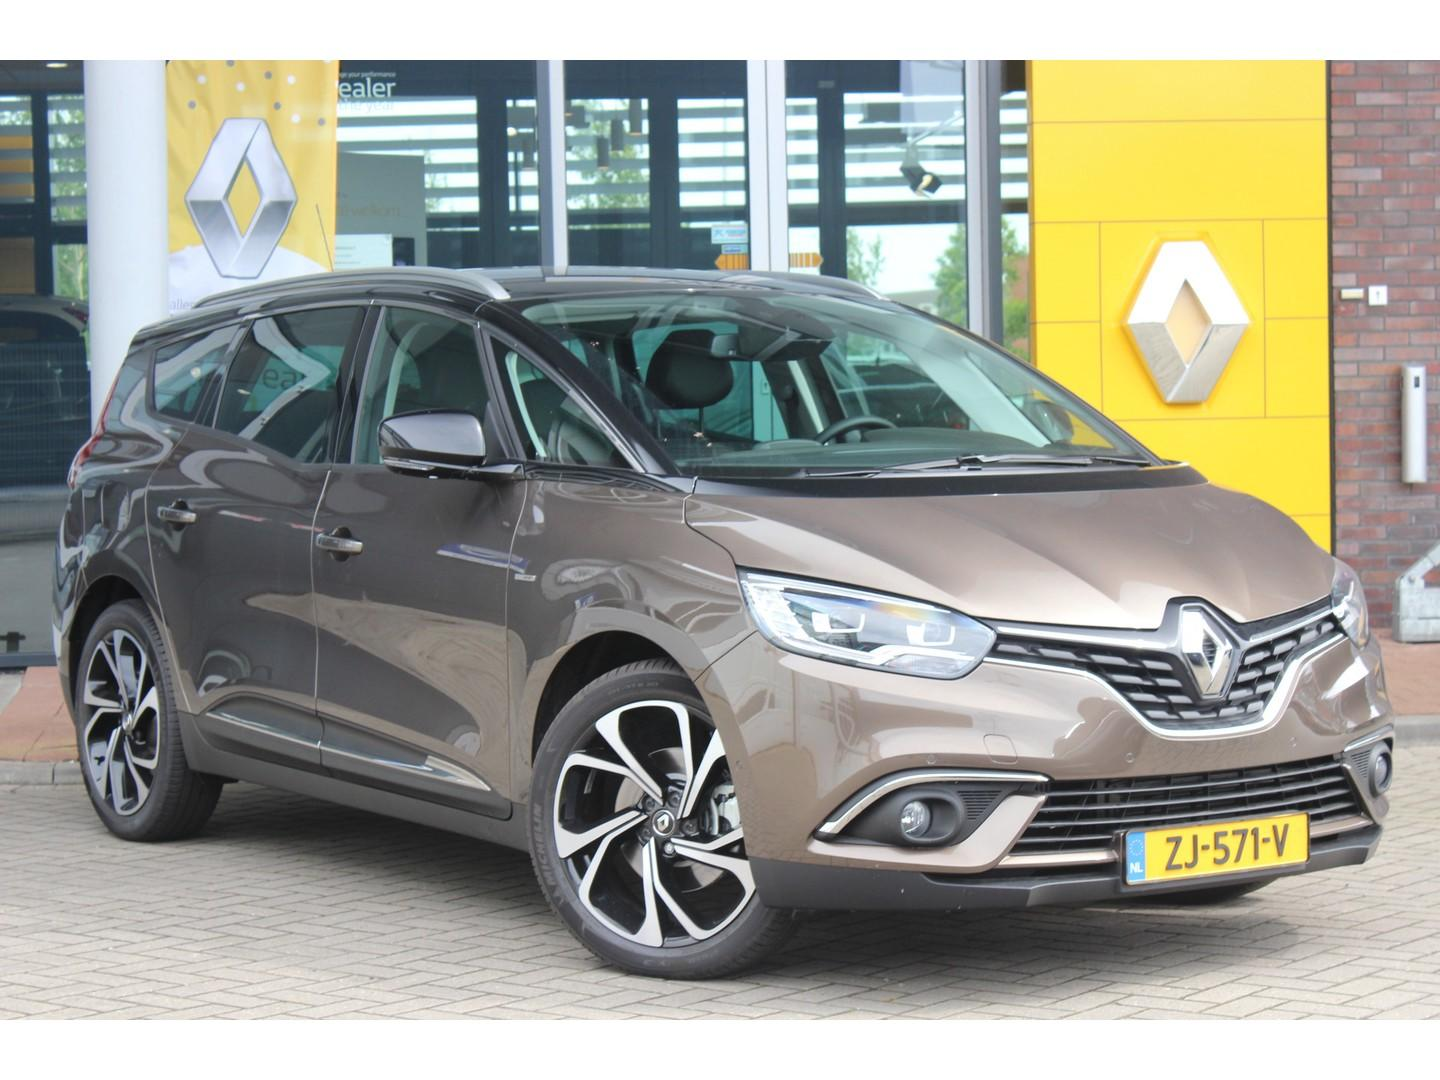 Renault Grand scénic Tce 140pk bose